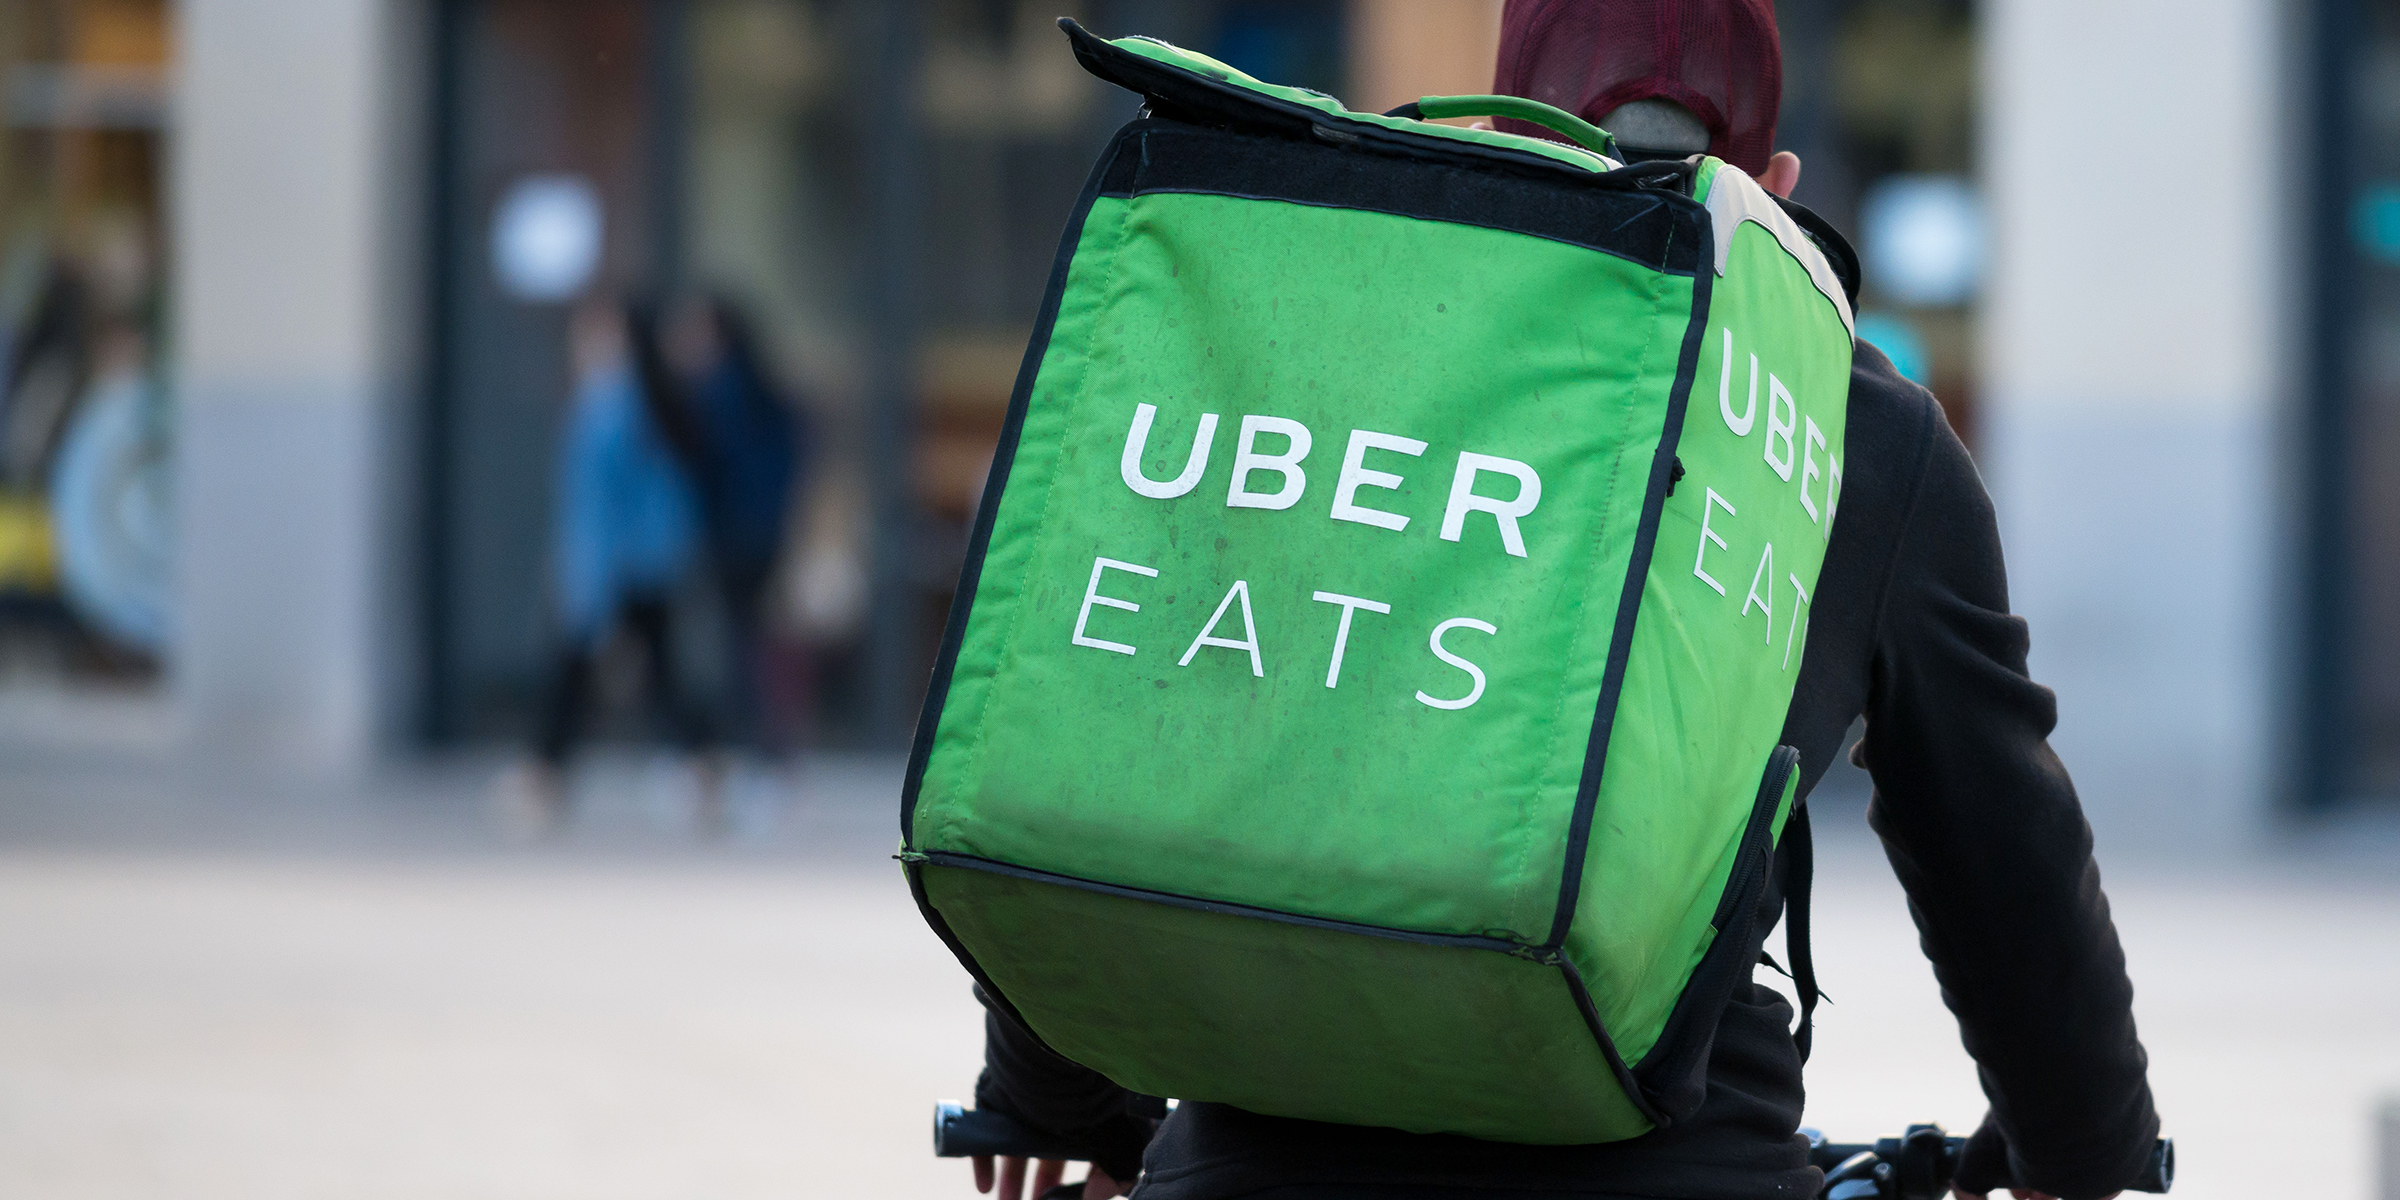 Uber Eats Is Waiving Delivery Fees On Orders From Black Owned Restaurants